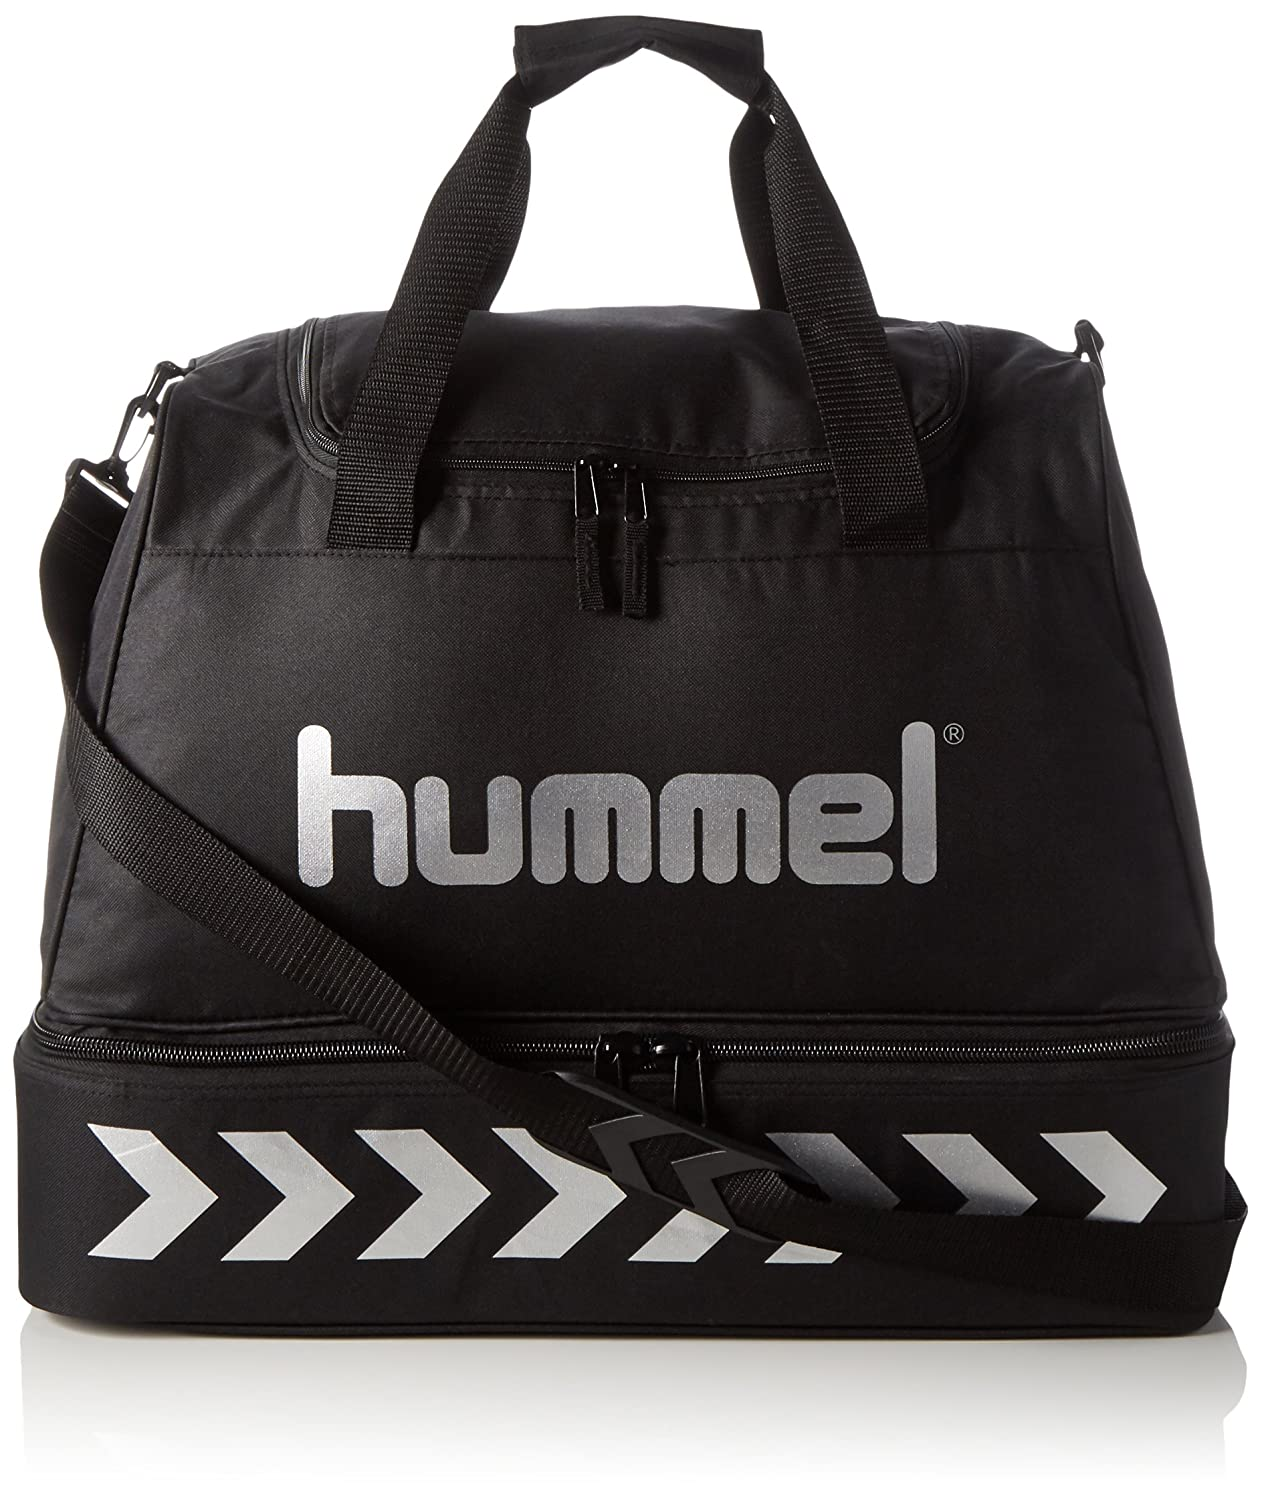 35932b375ae1 Hummel Authentic Soccer Bag Football Training  Amazon.co.uk  Sports    Outdoors